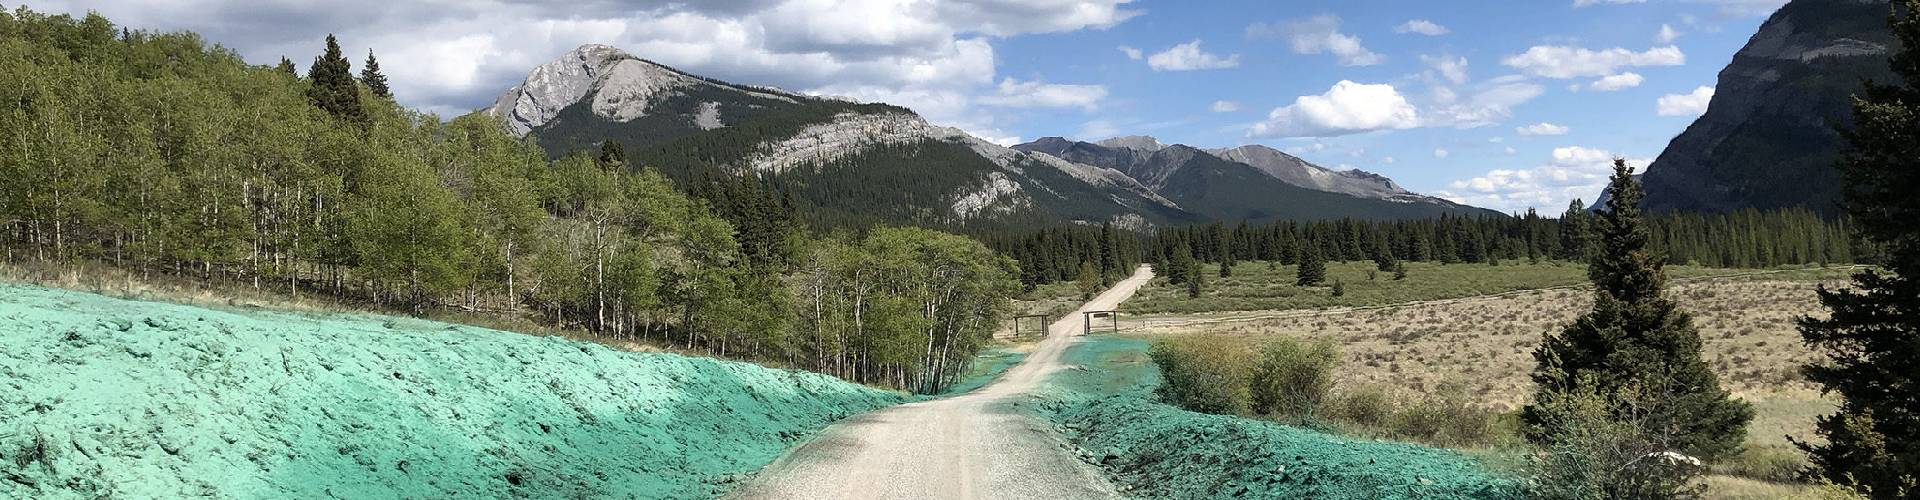 landscape with hydropseeding to prevent erosion